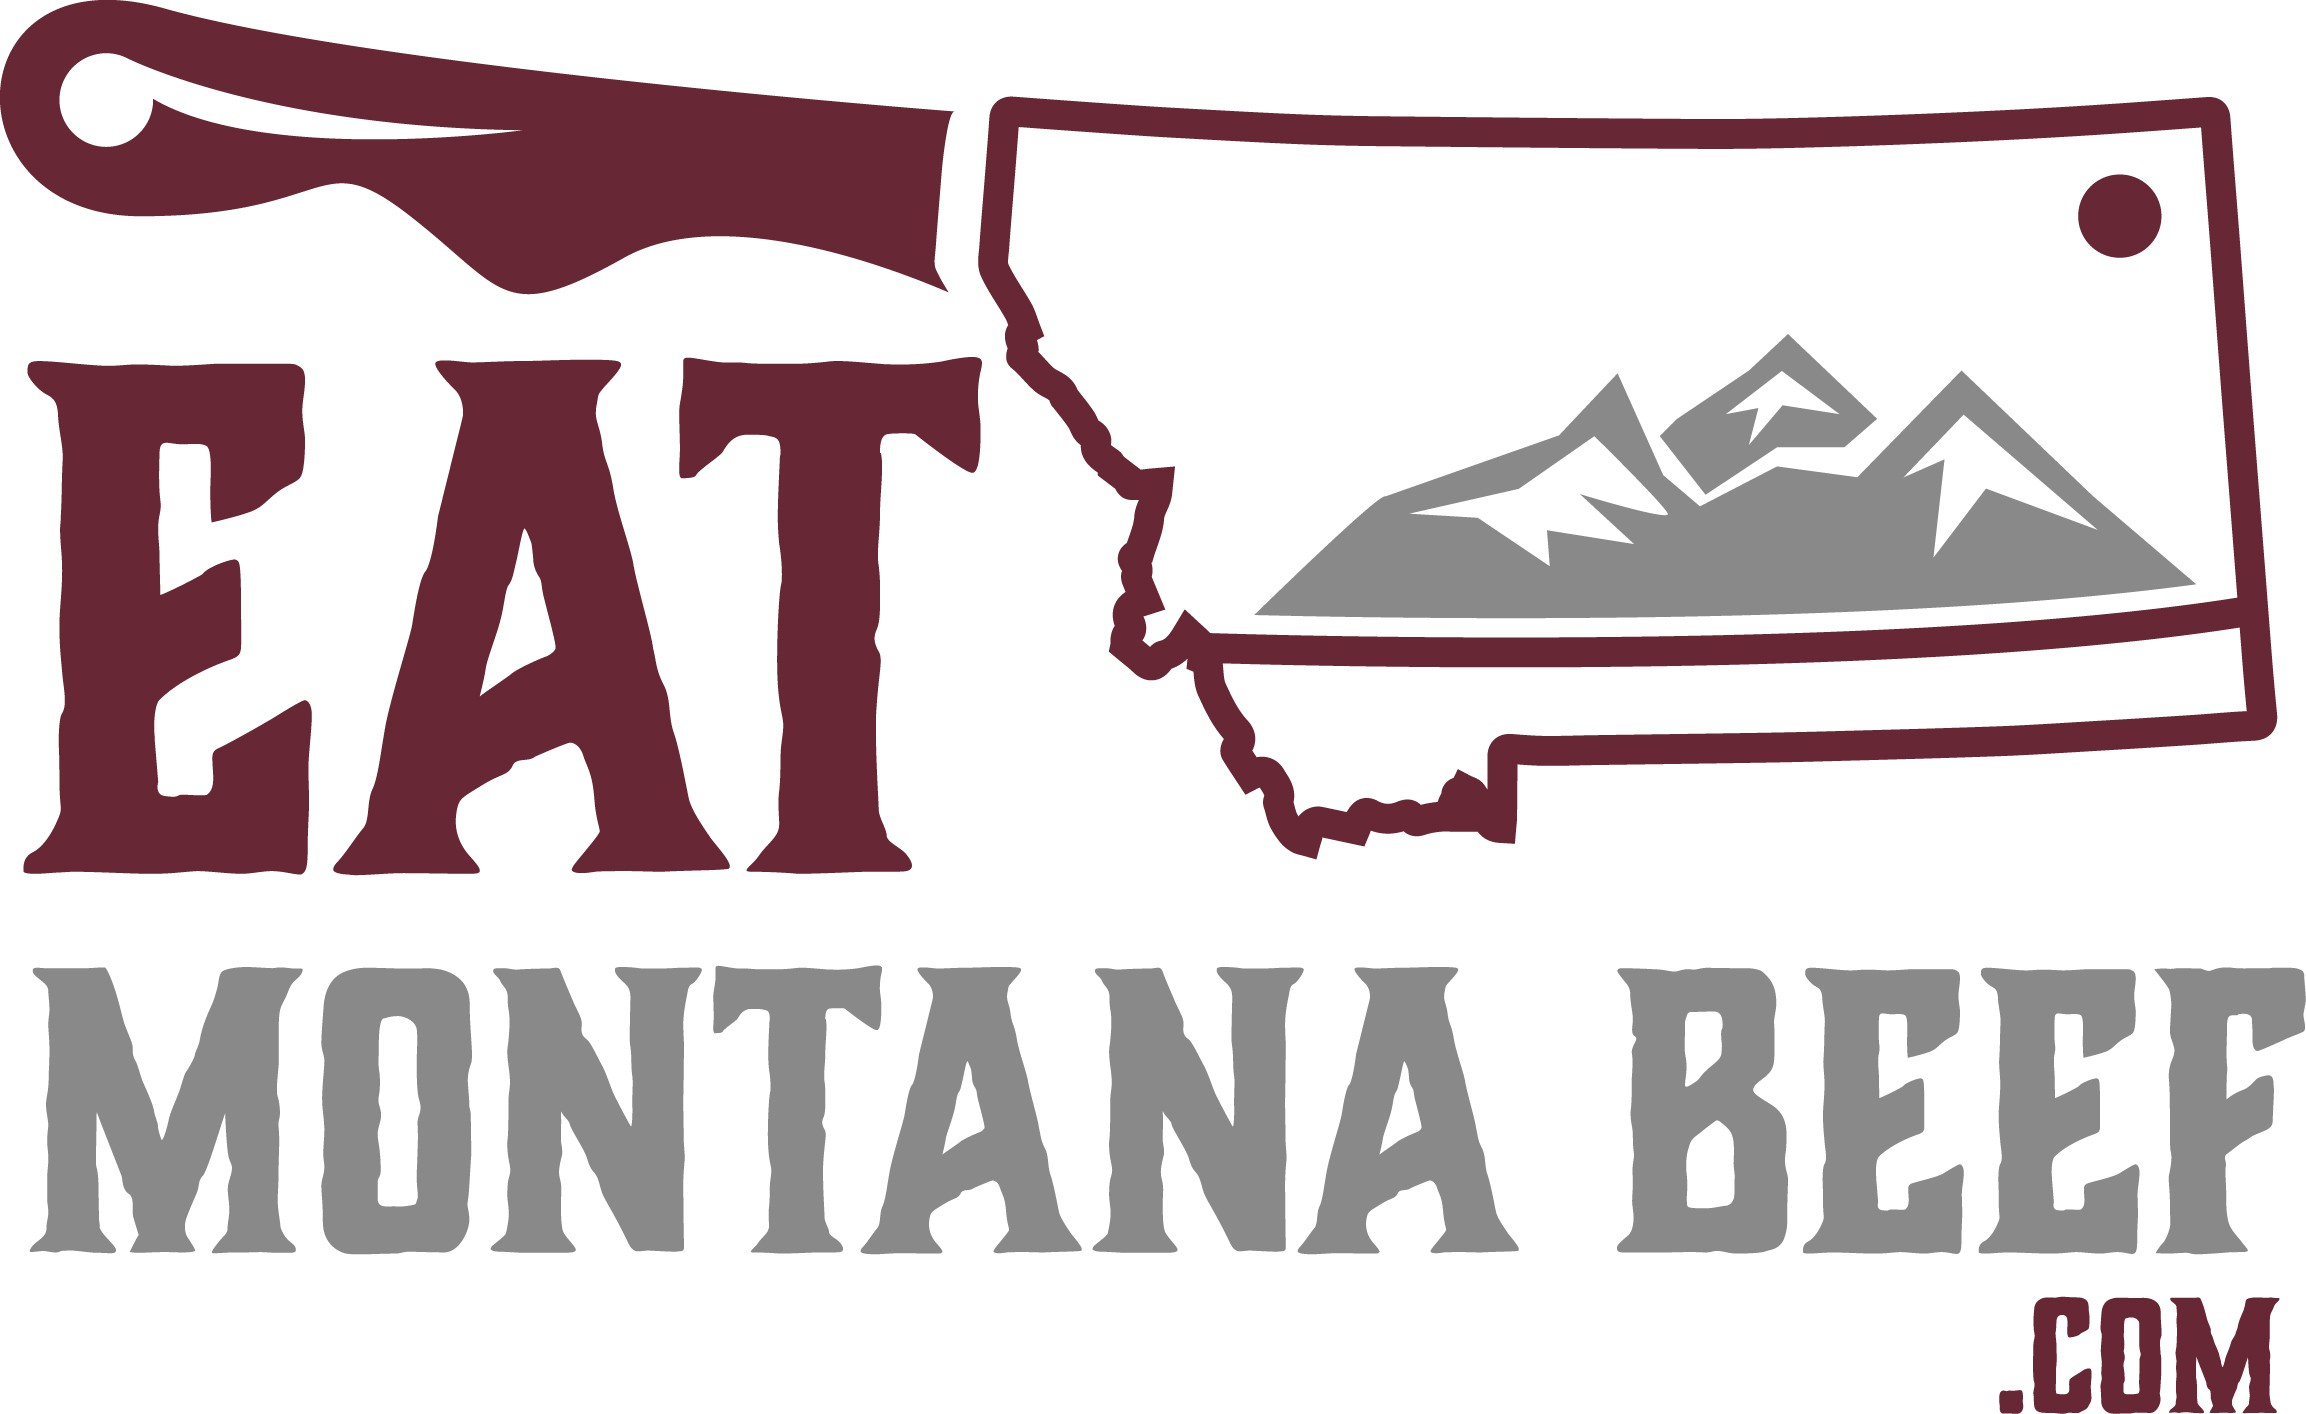 Eat Montana Beef is looking for an eye catching logo